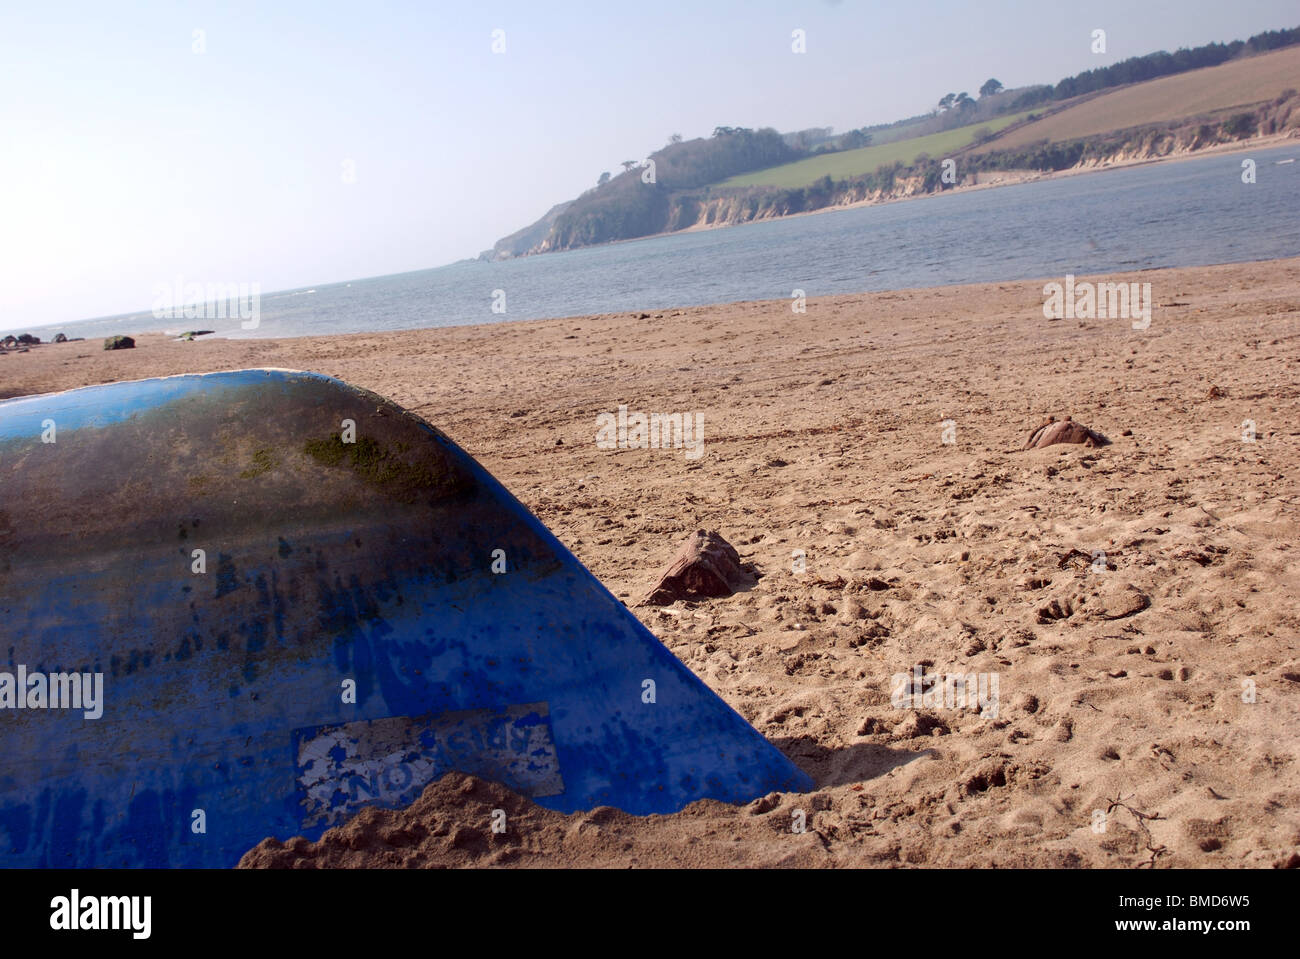 Bow of upturned boat at angle, Erme estuary, near Kingston, South Hams, Devon, UK - Stock Image